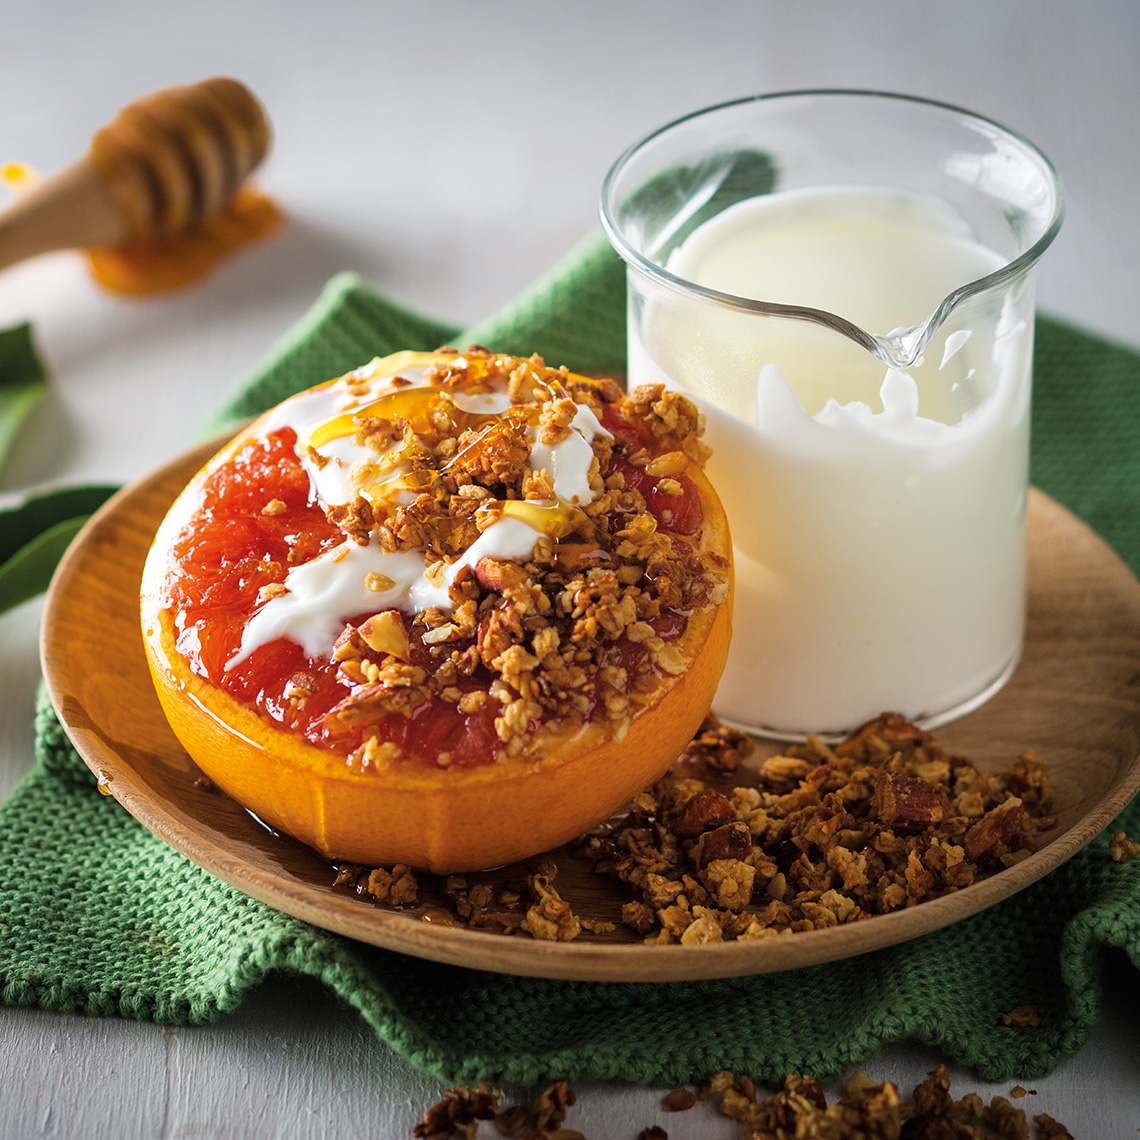 Grilled grapefruit with oat crumble